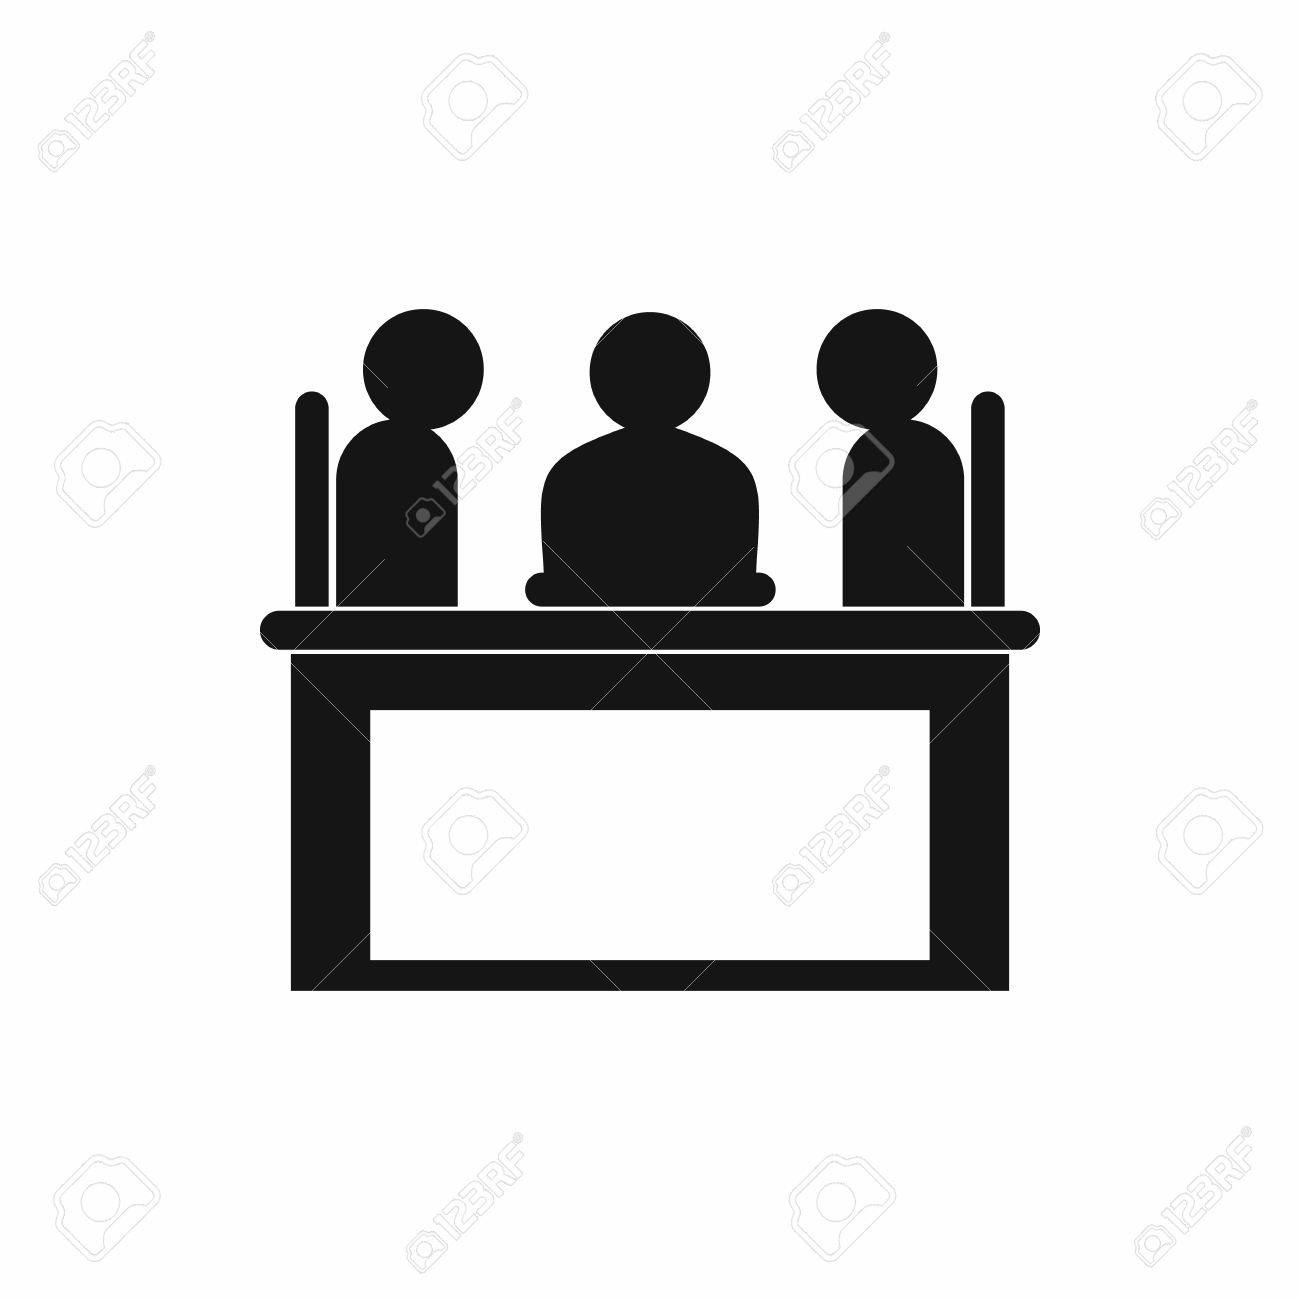 Simple table free other icons - Businessmen Sitting At The Table Negotiations Discussion Icon In Simple Style Isolated On White